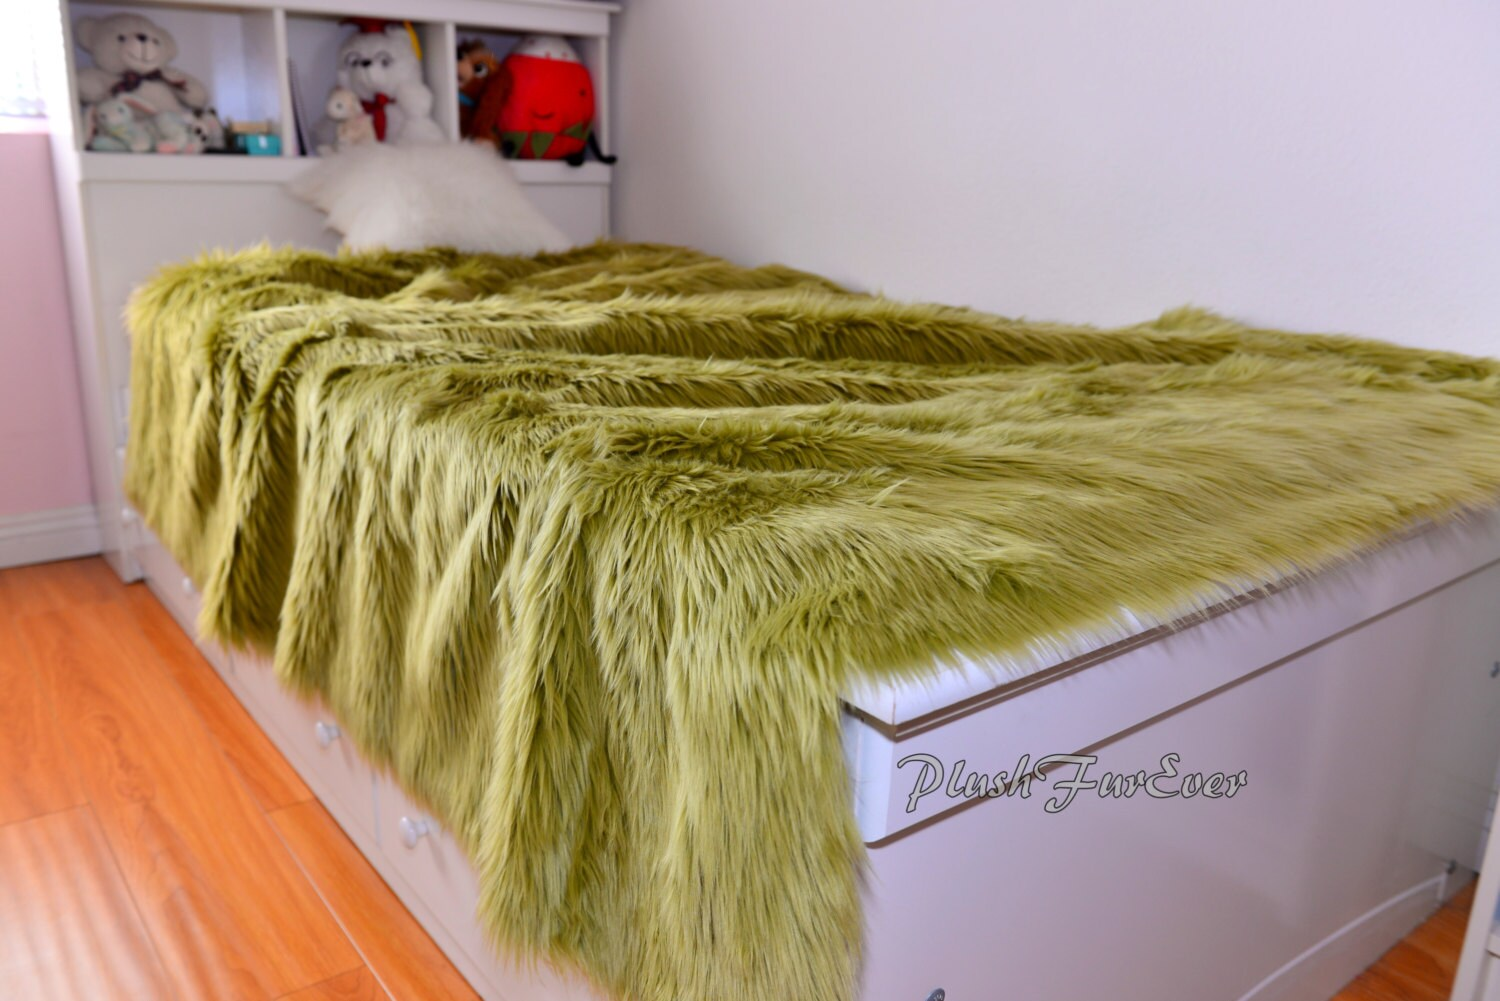 Olive Green Shaggy Faux Fur Premium Bedroom Bedding